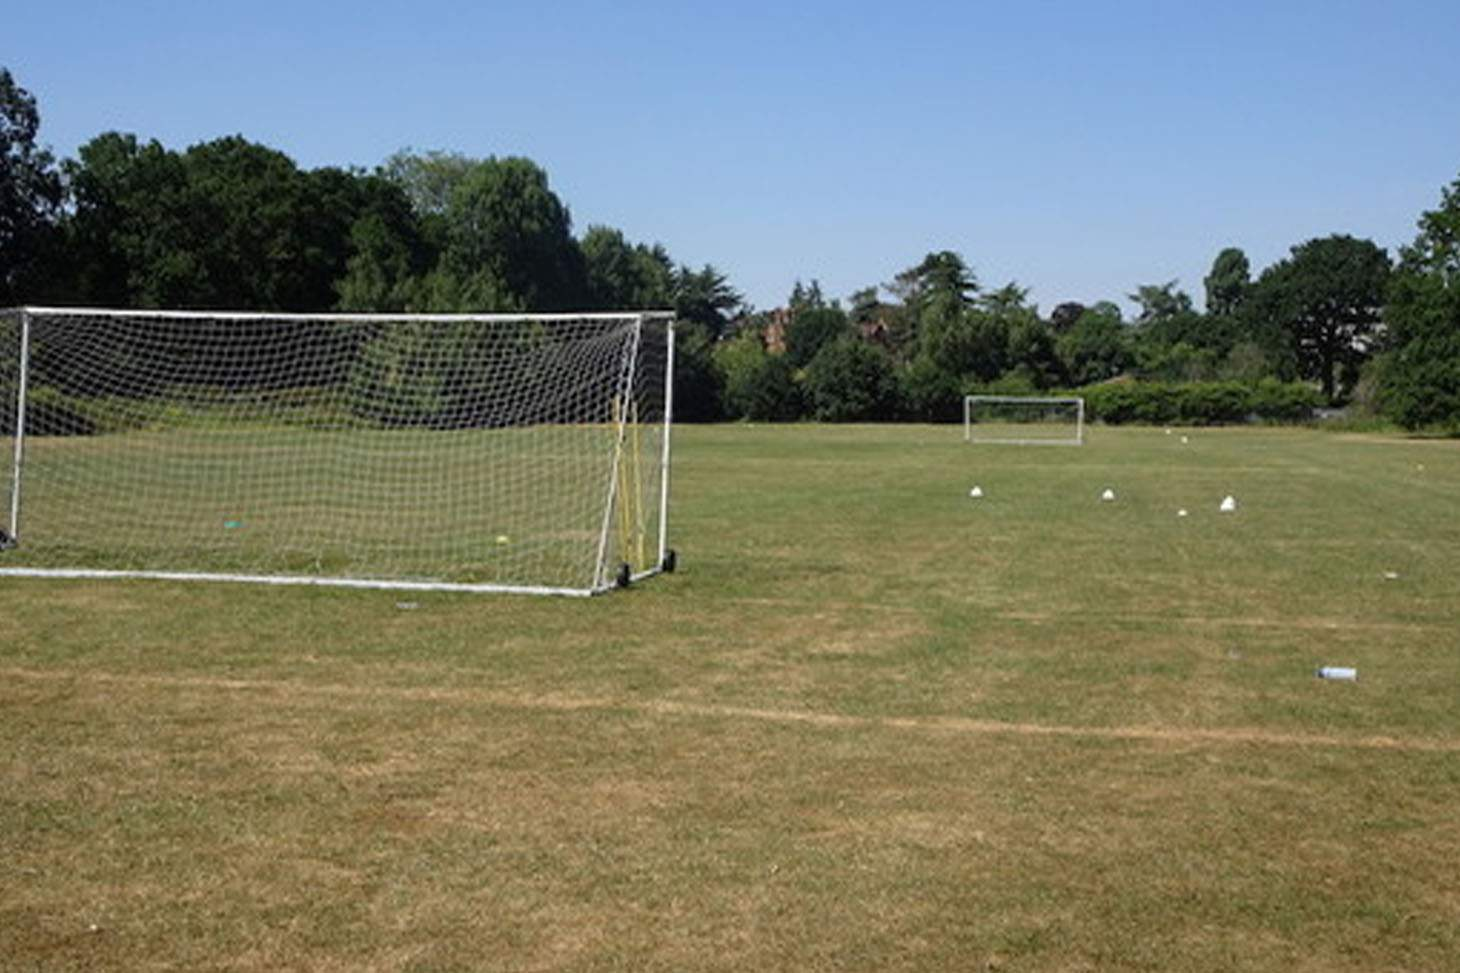 Tudor Grange Academy Solihull 11 a side | Grass football pitch